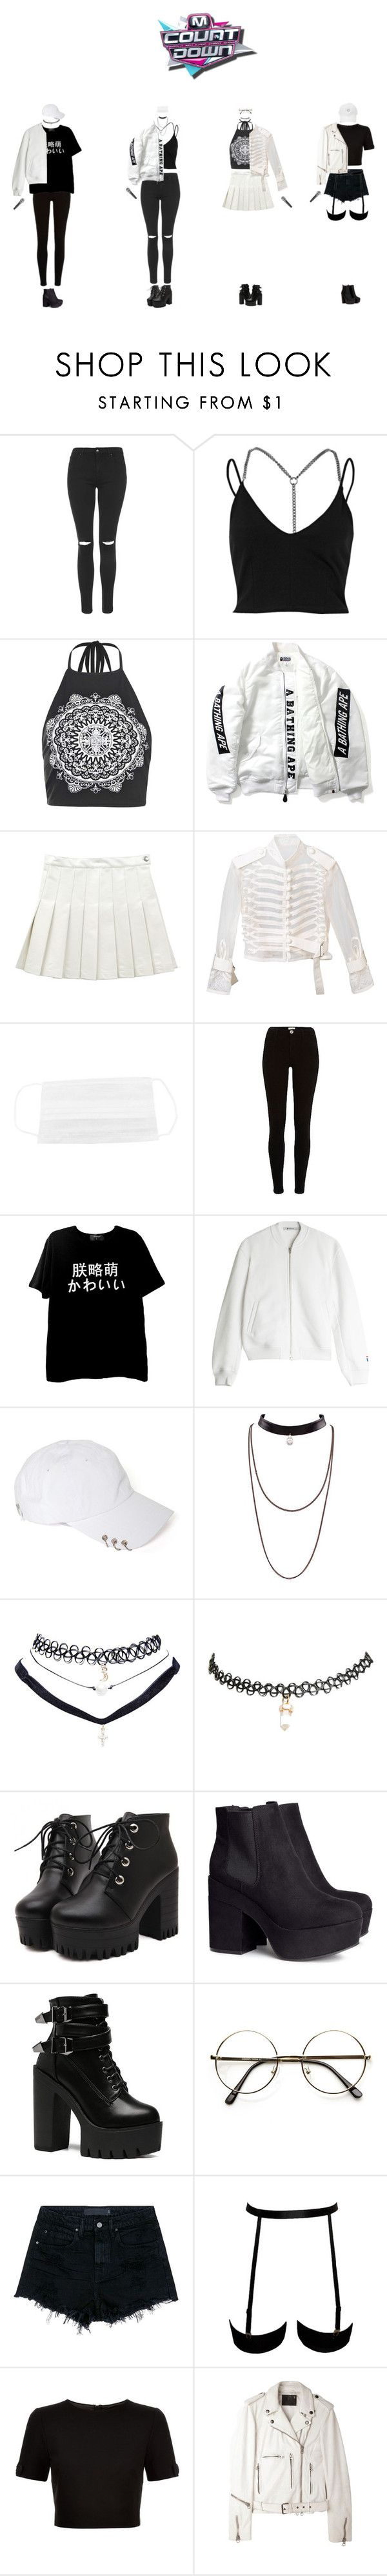 """""""[M!Count Down] Comeback SWIRL - KARMA"""" by swirlsquad1234 ❤ liked on Polyvore featuring Topshop, River Island, Boohoo, Sacai, T By Alexander Wang, Wet Seal, H&M, Audio-Technica, Alexander Wang and Ted Baker"""